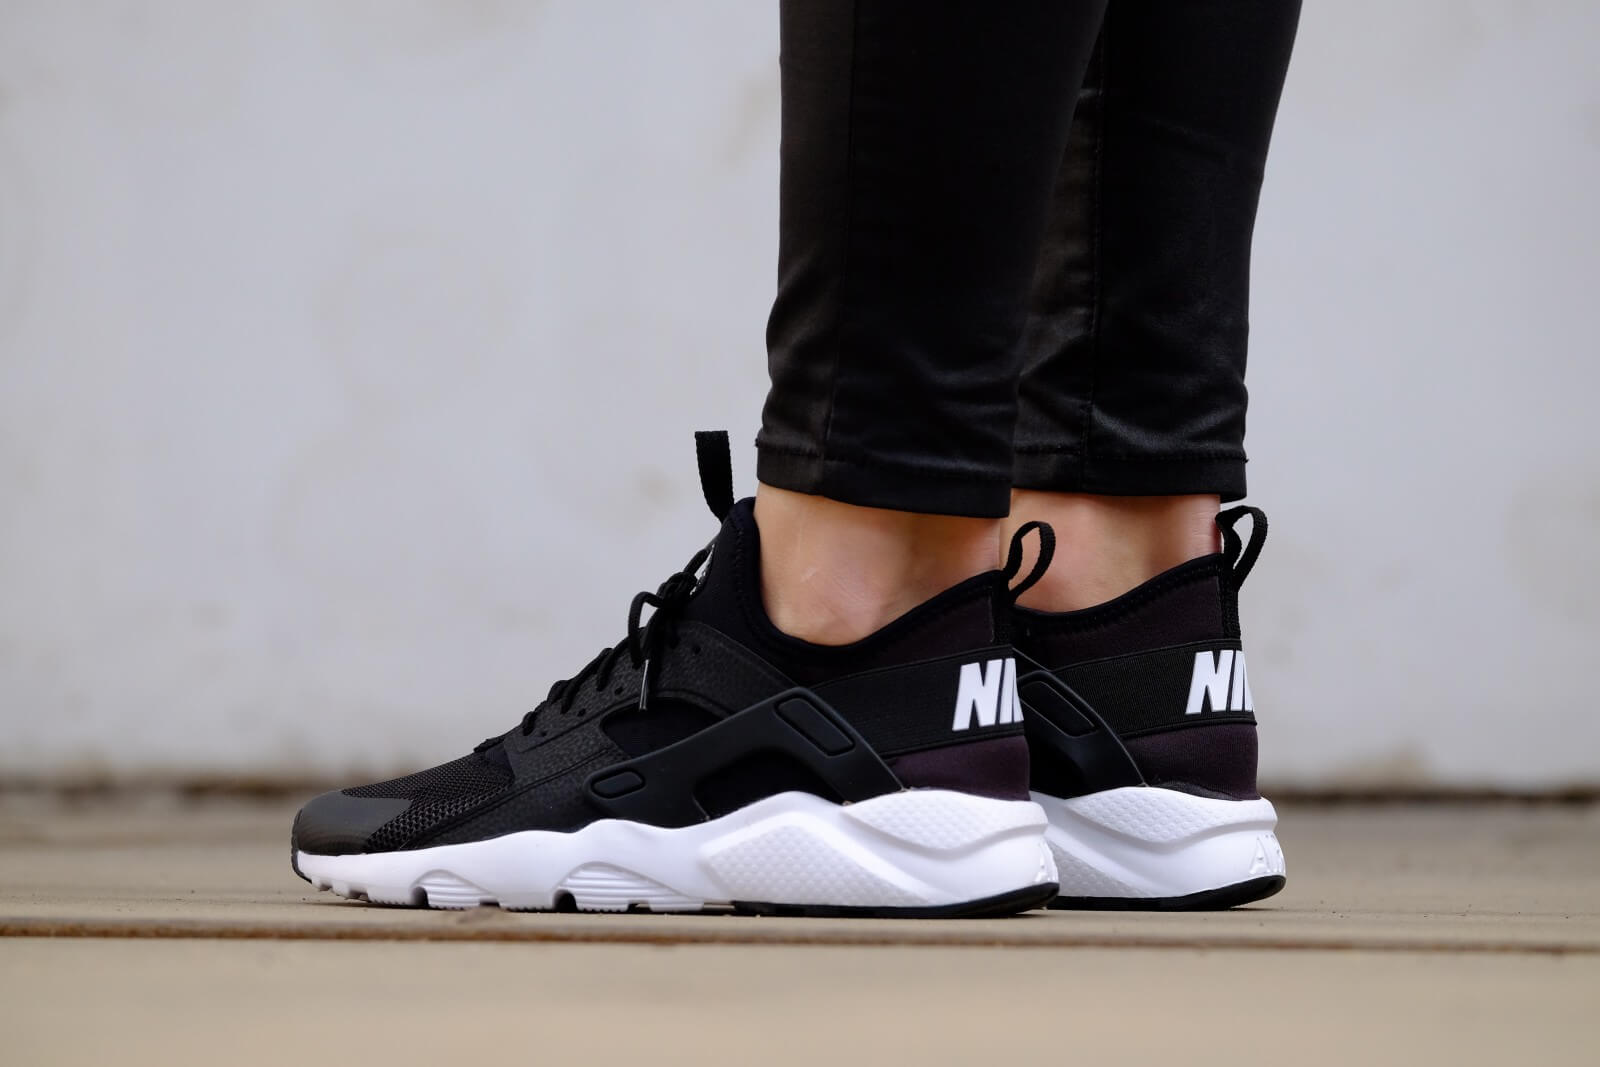 Nike Air Huarache Run Ultra GS Black White 847569 002